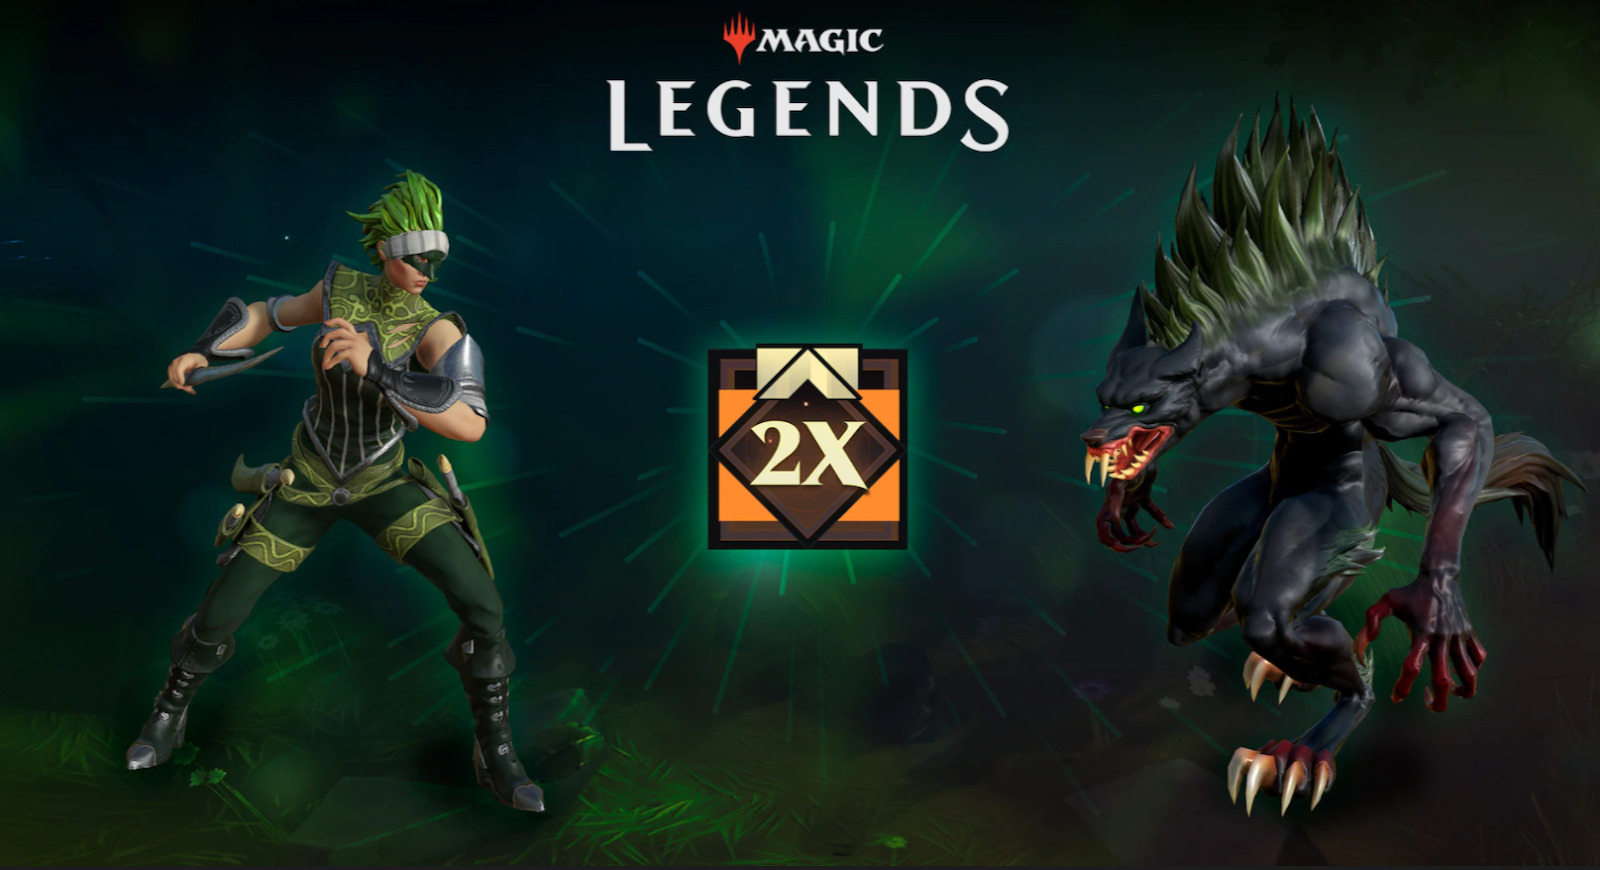 magic legends the magical legend of the leprechauns magic legends release date magic legends beta magic legends gameplay magic the gathering legends legend of zelda magic sword magic legends mmo magic legends ps4 mobile legends magic chess the magical legend of the leprechauns cast legends of might and magic magic legends classes magic the gathering legends release date play magic legends beta thor legend of the magical hammer magic chess mobile legend raid shadow legends magic champions from the vault legends magic cd key buy epic key buy epic download magic legends beta release date